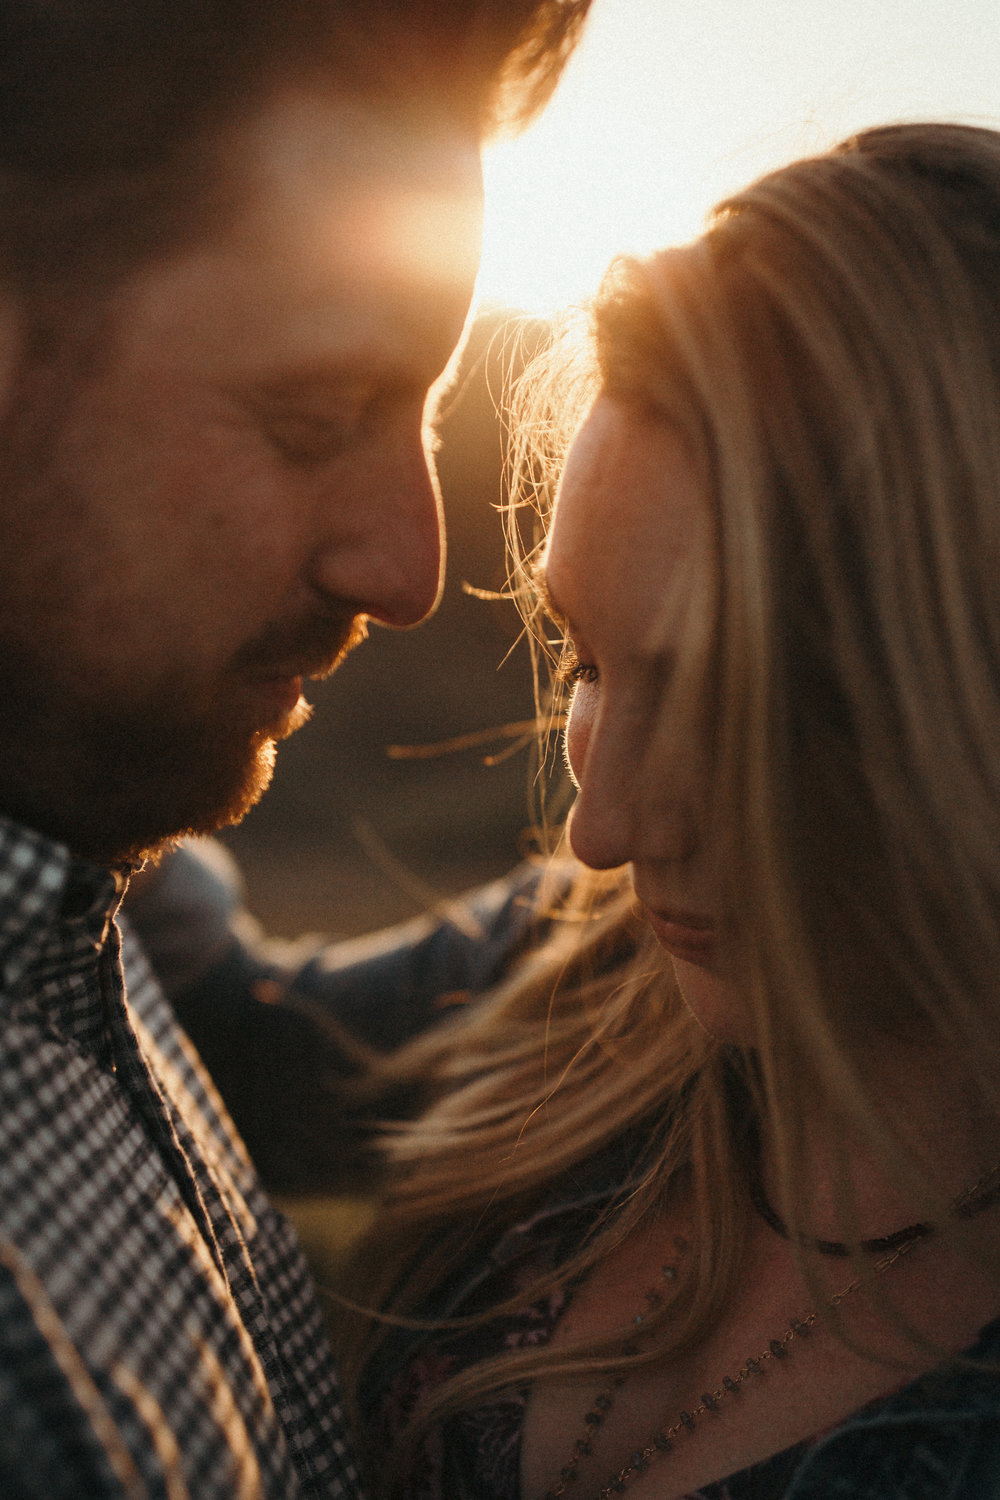 sanfrancisco-california-wedding-photographer-napa-california-engagements-west-marin-california-engagements-297.jpg